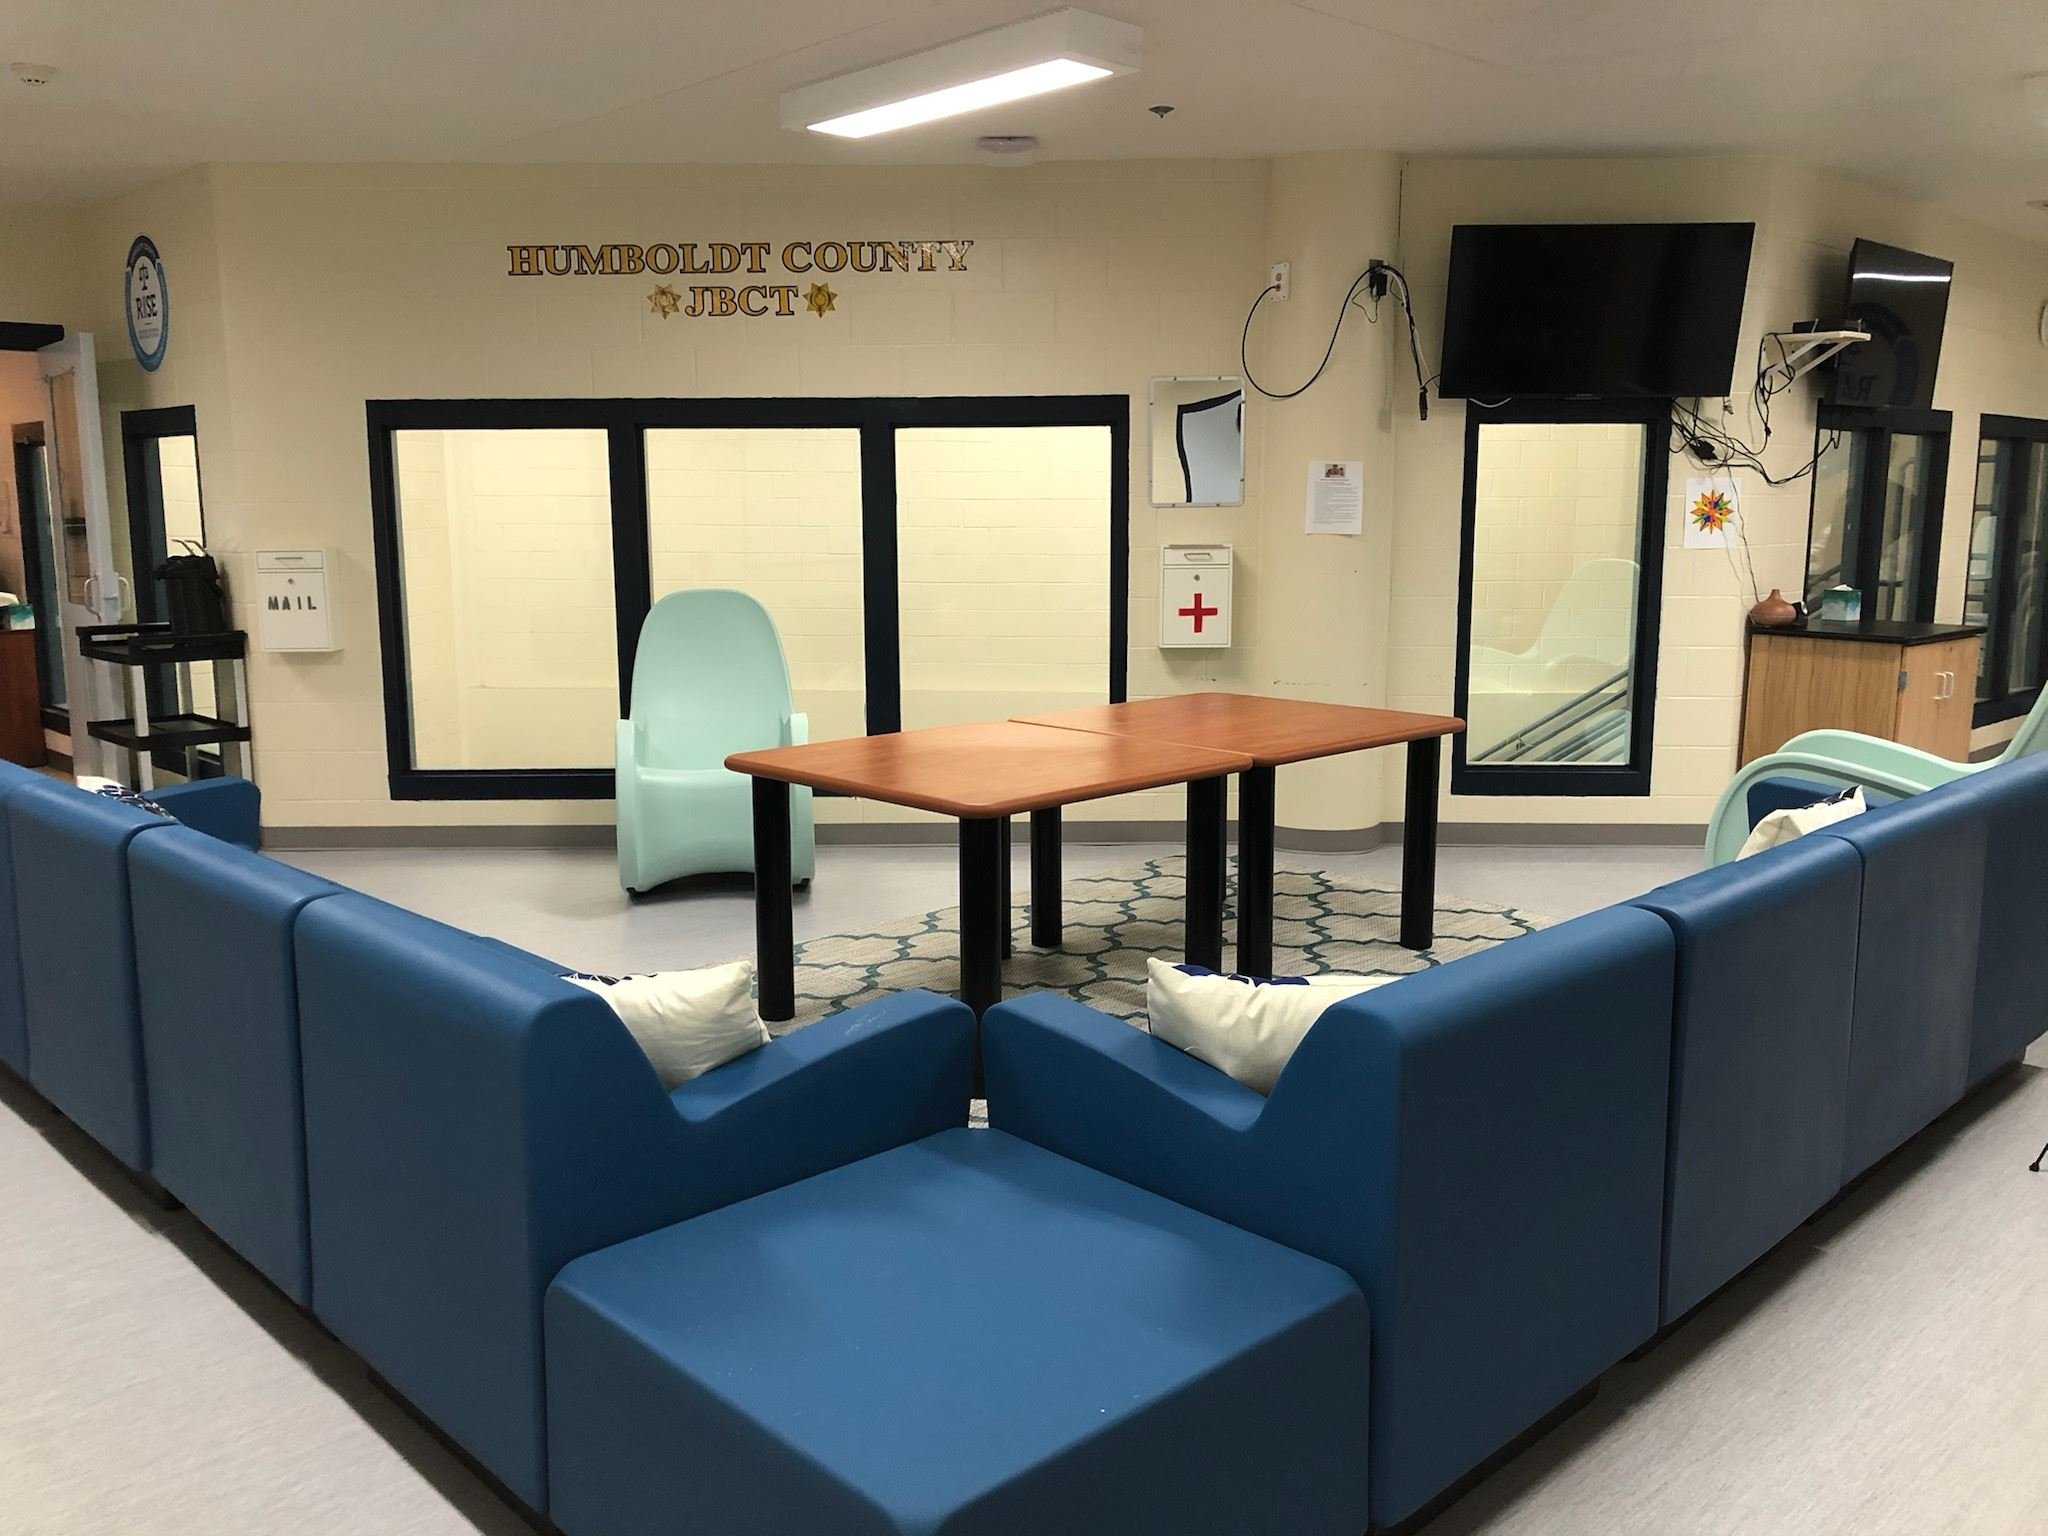 A L-Shaped couch and a rocking chair in the new JBCT unit of the jail